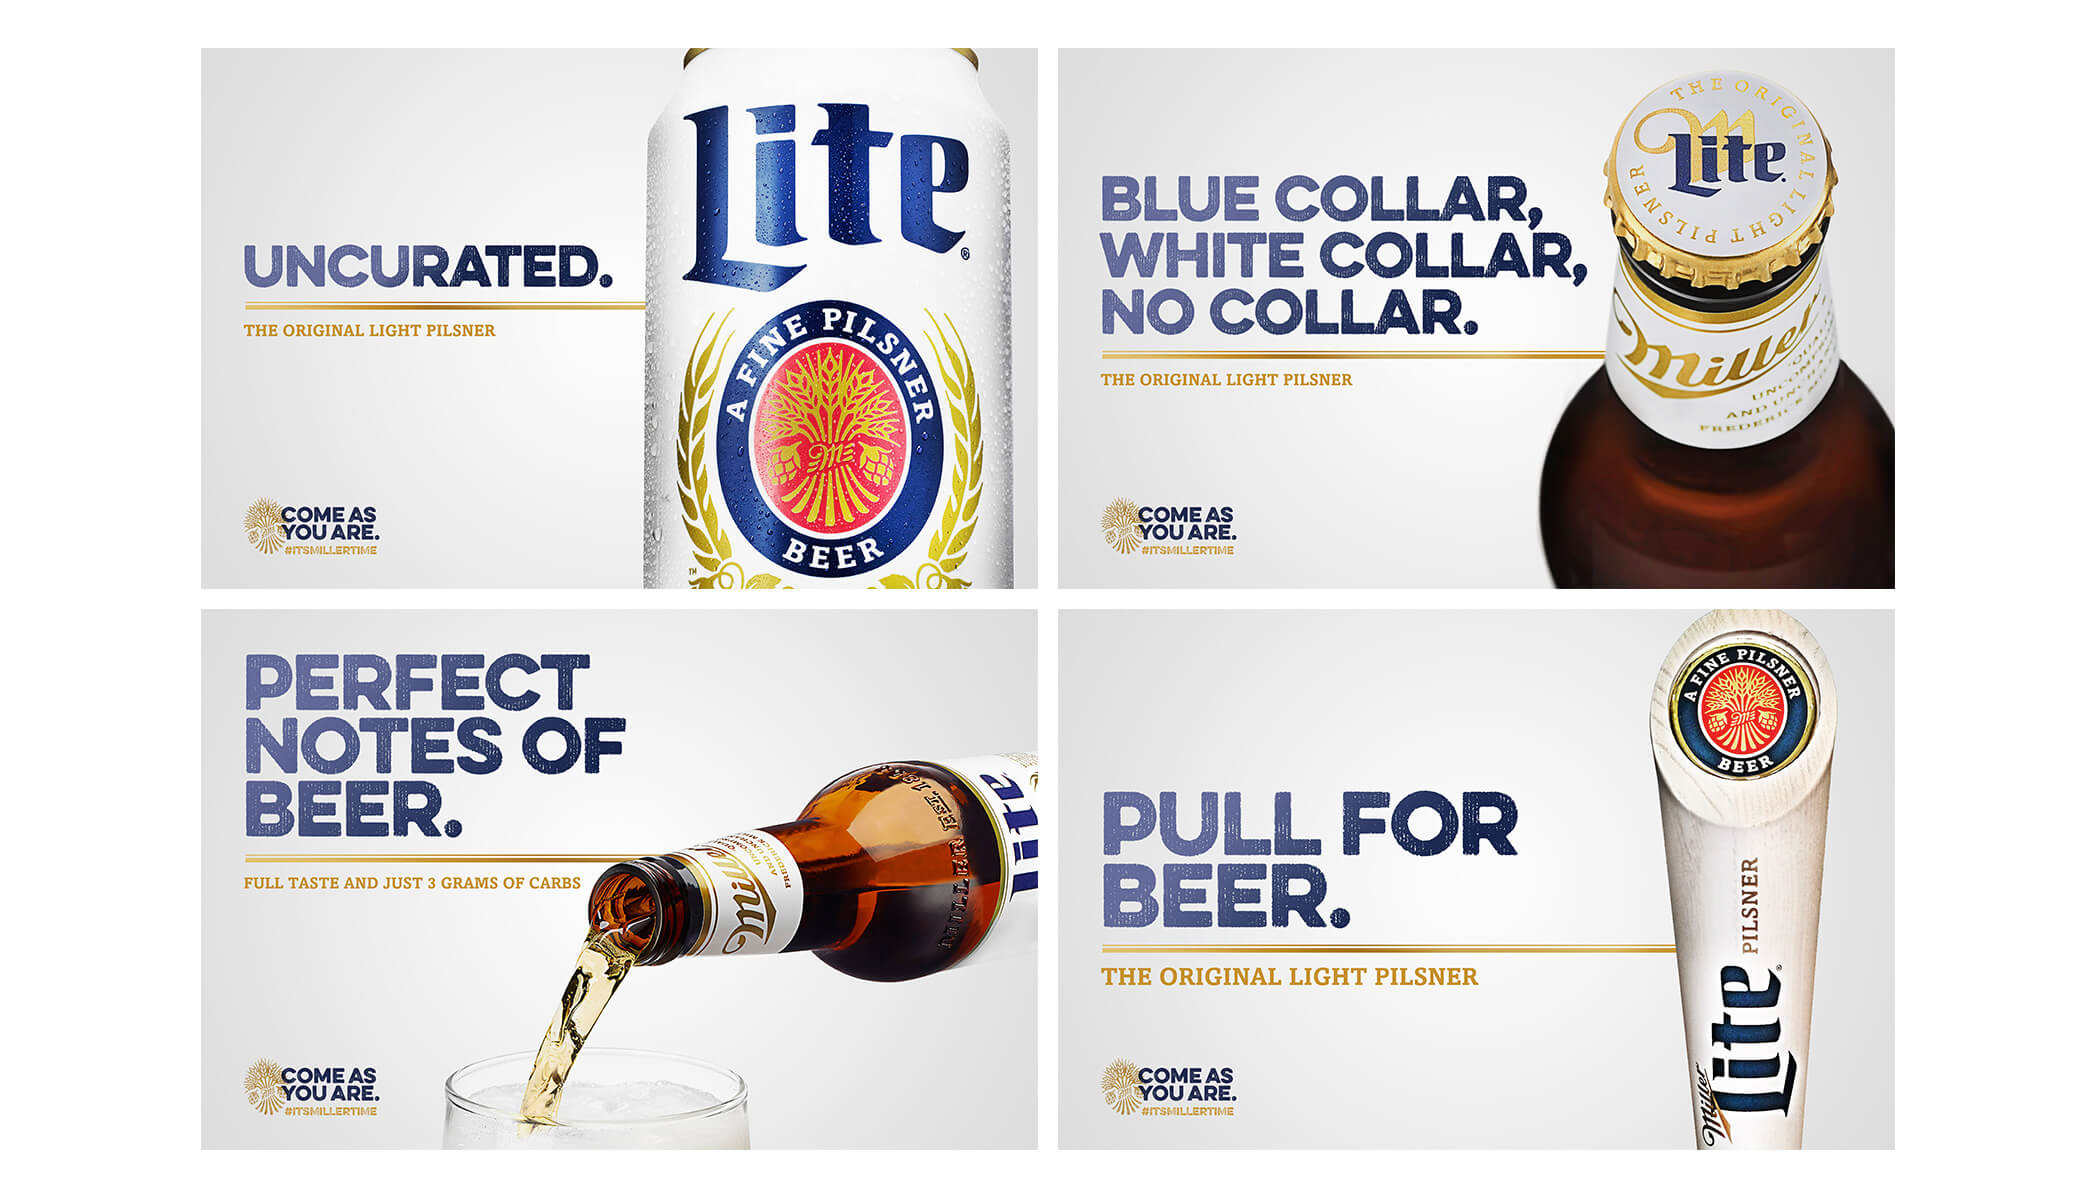 MillerLite-product-visuals